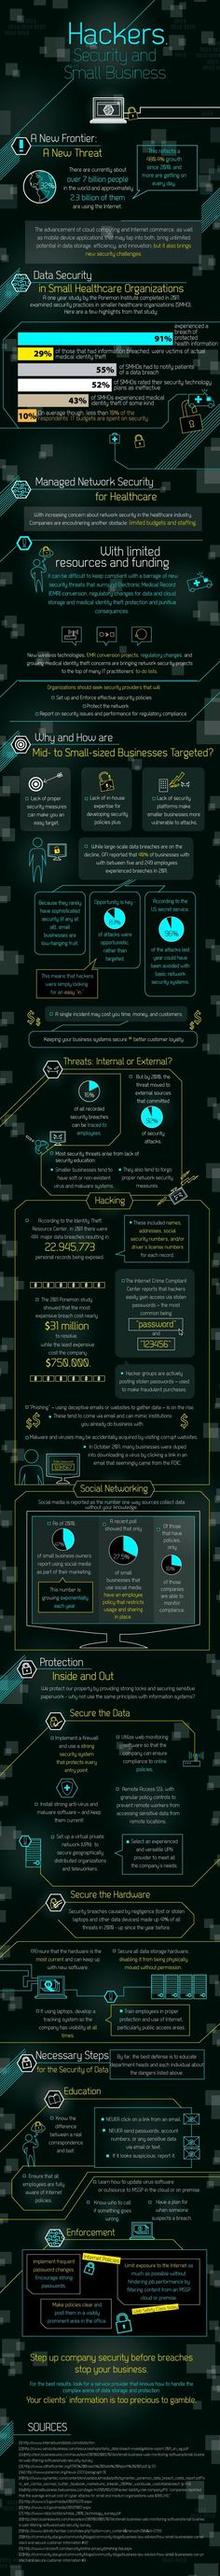 Hackers, Security and Small Business [Infographic